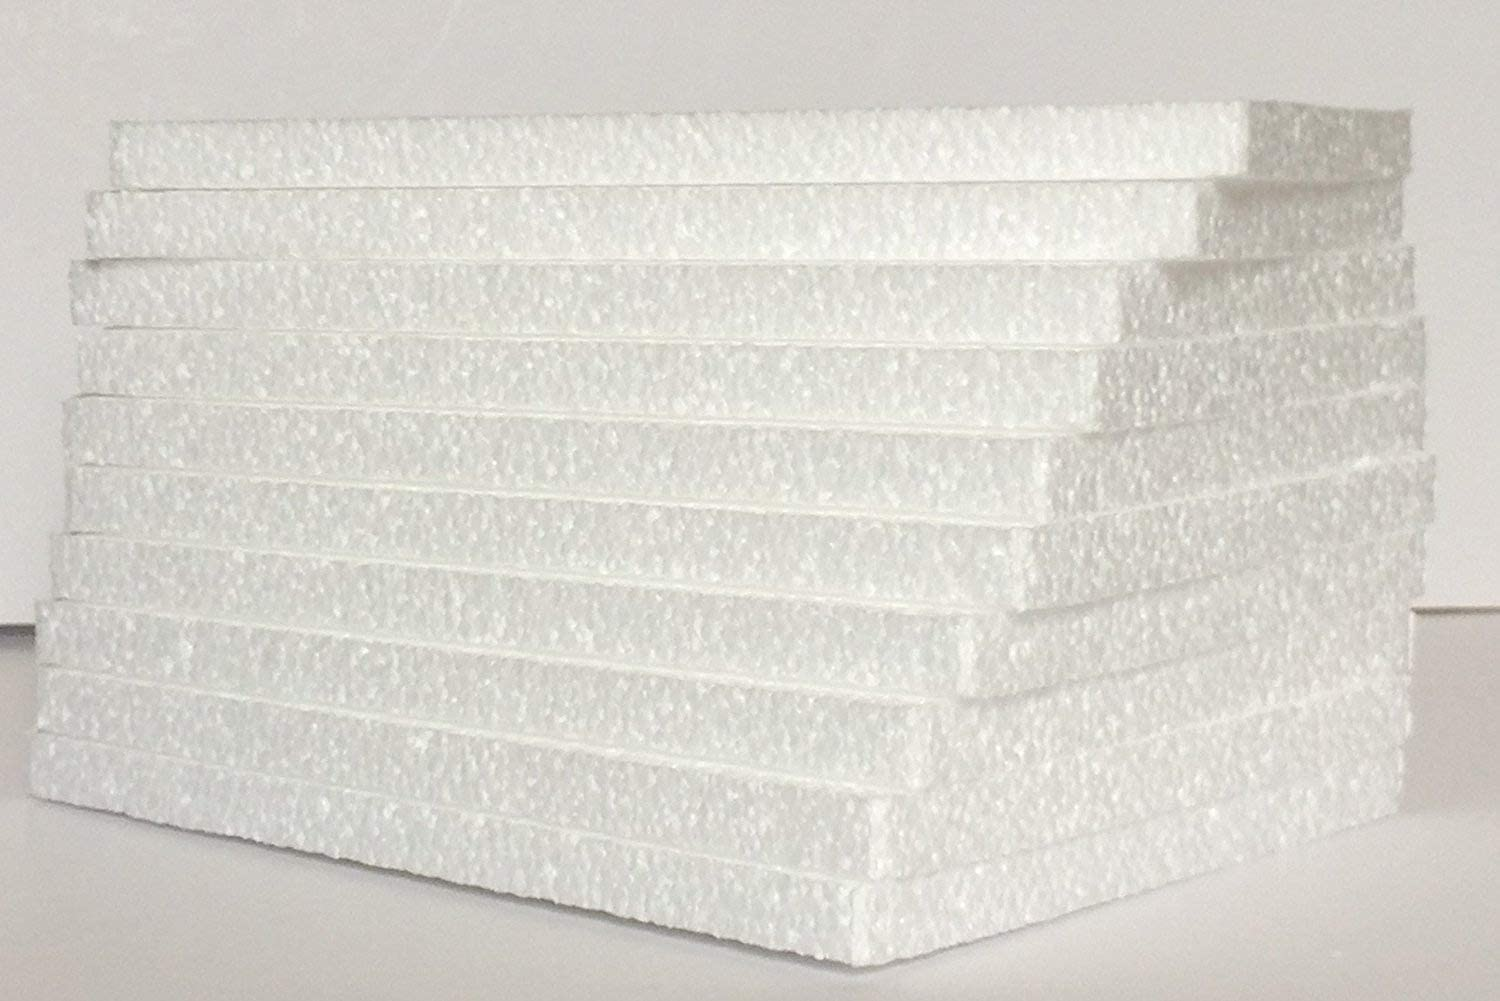 Styrofoam Sheets 6 Sale item X 8 1 2 Lot 80 Inches - of White Soldering